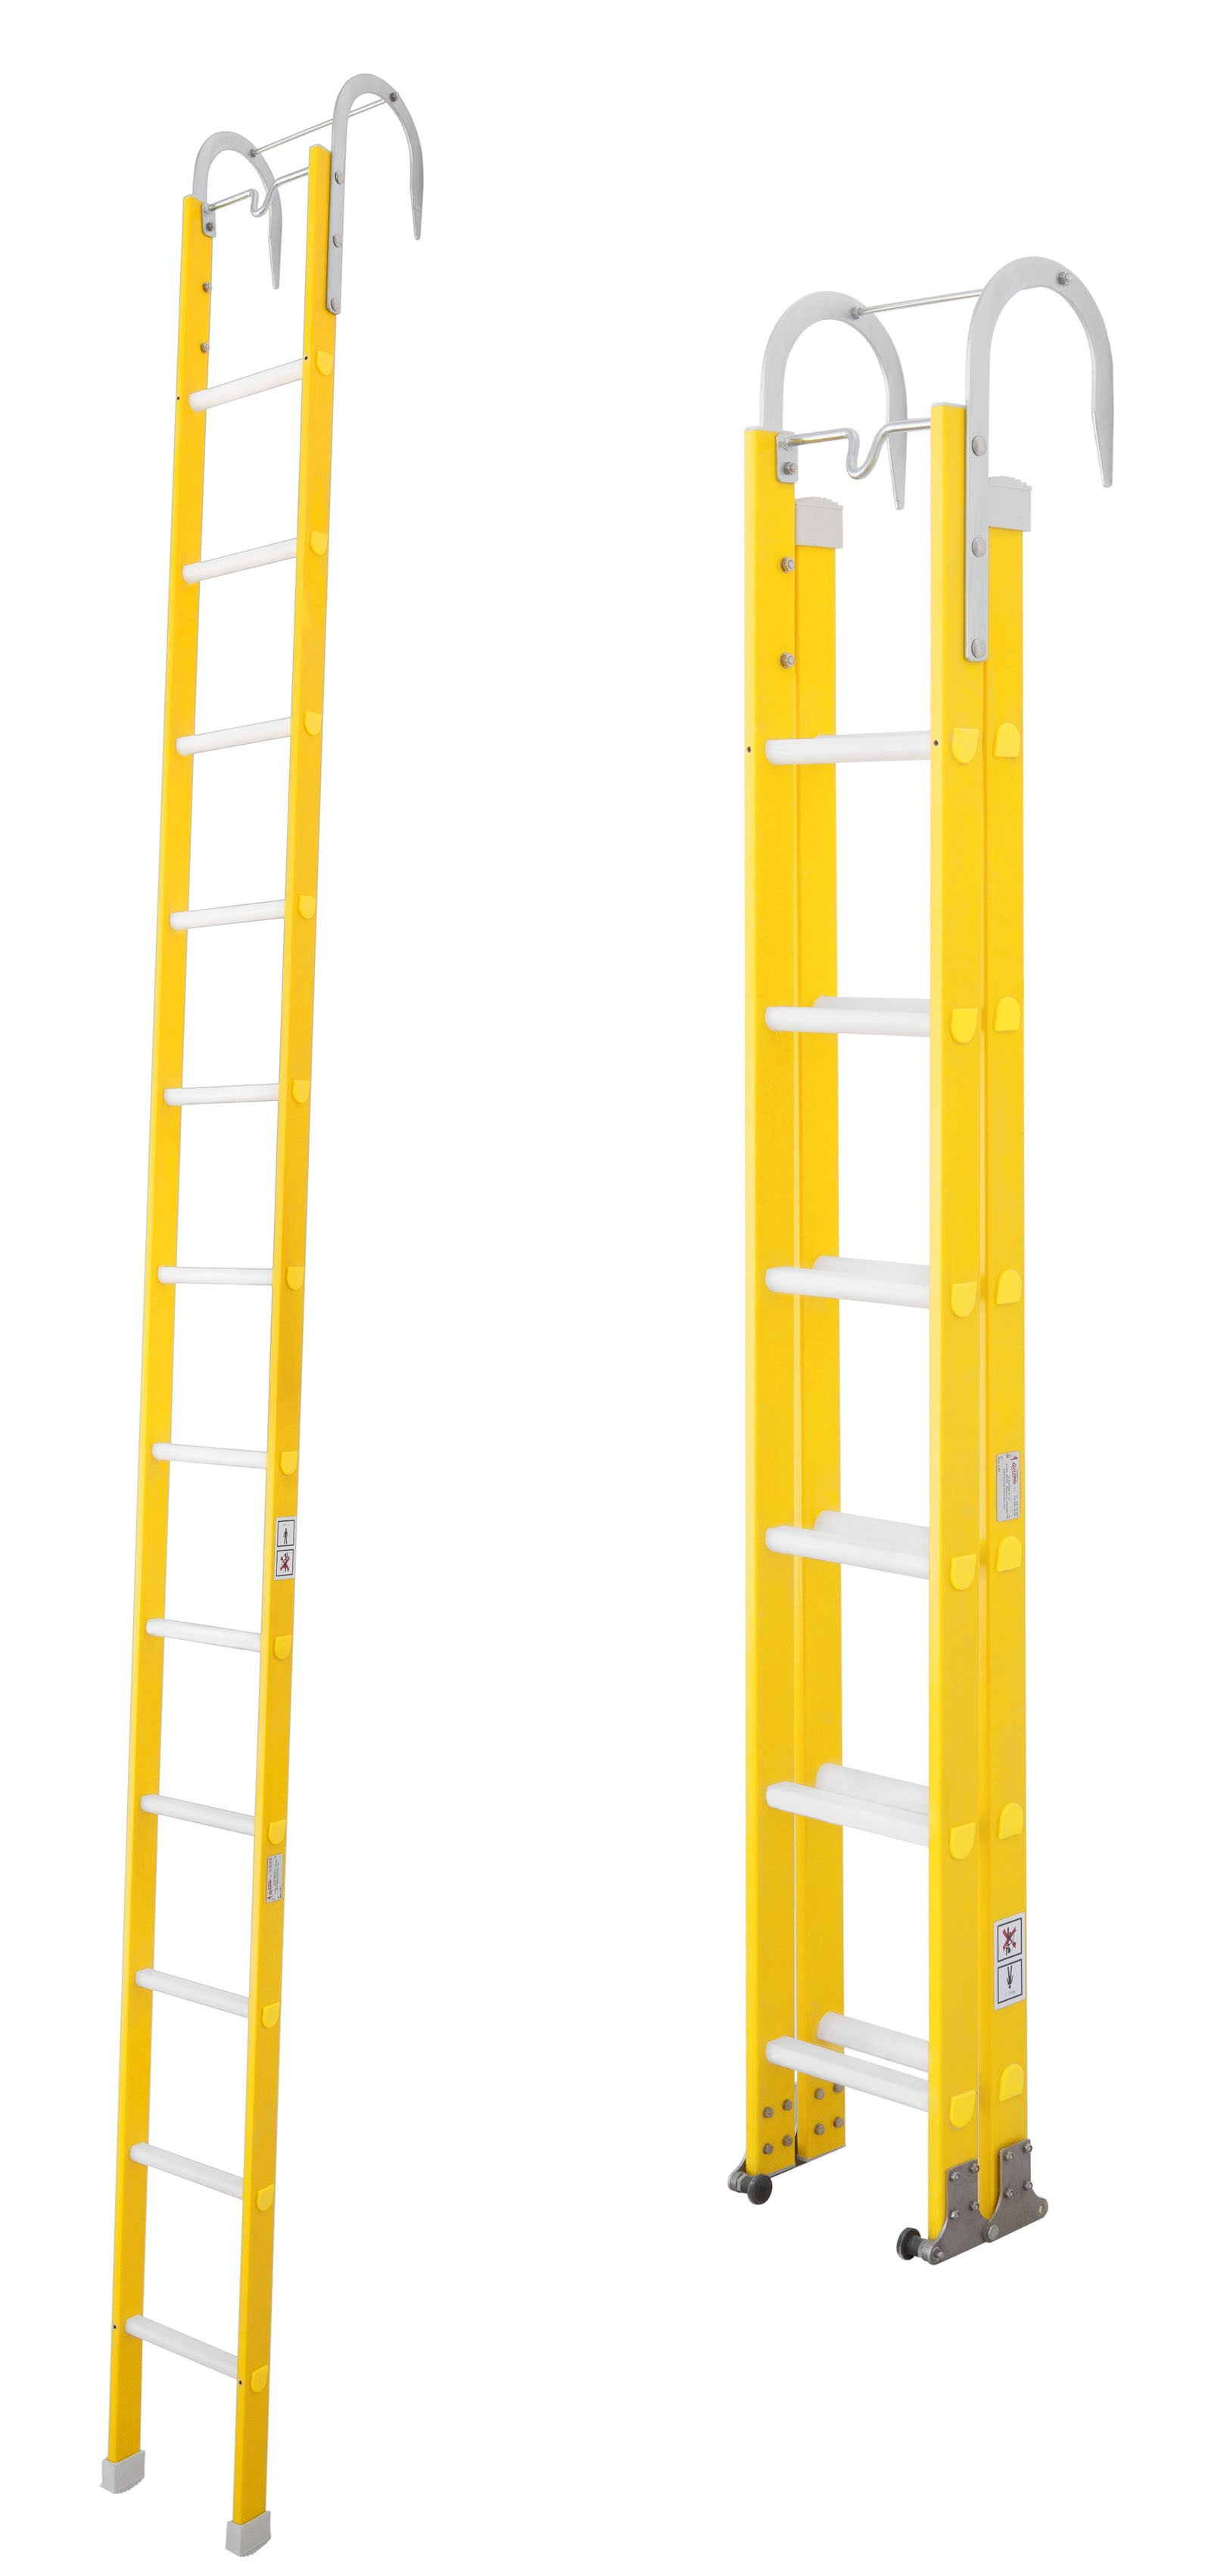 ASSAULT LADDERS FOR FIRE-FIGHTING